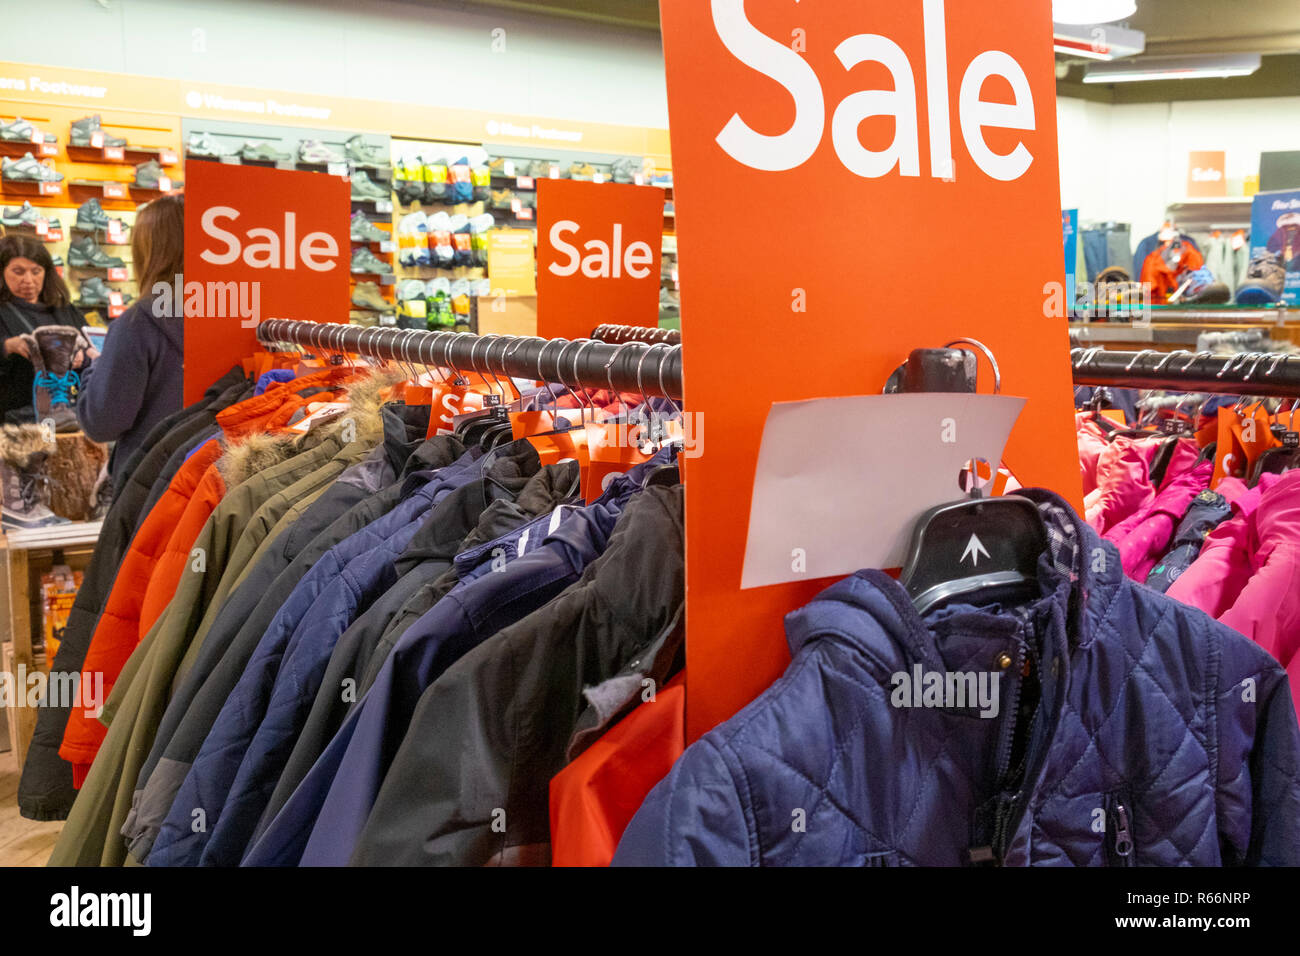 f52af81369a Racks Of Clothes Stock Photos   Racks Of Clothes Stock Images - Alamy